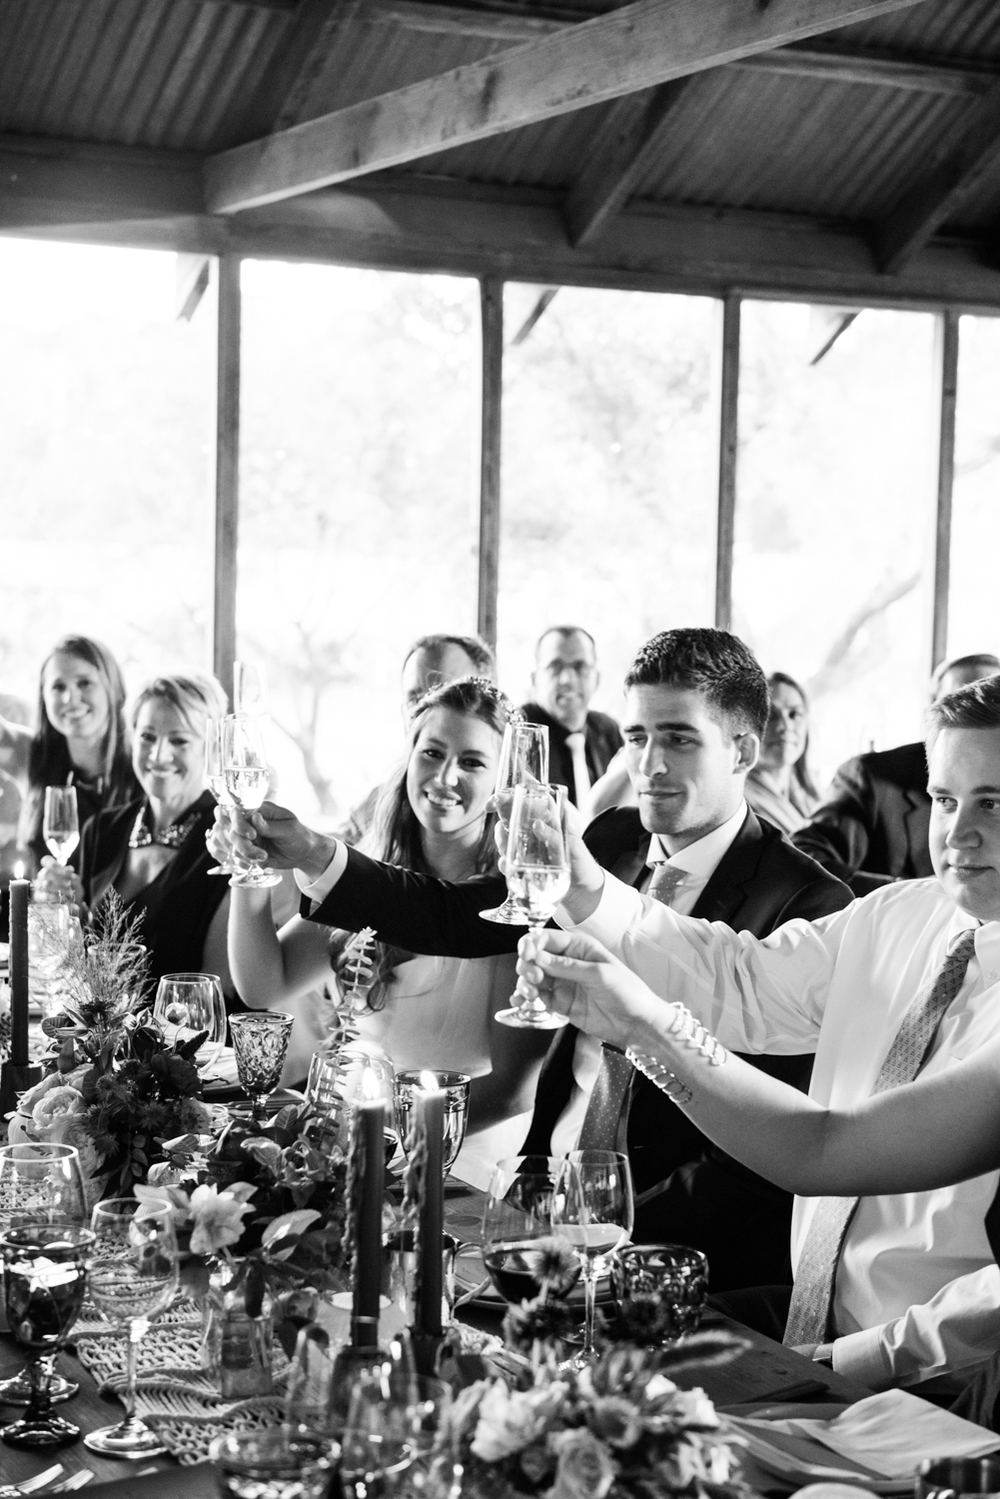 The bride and groom raise their glasses in a toast during their barn reception; photo by Sylvie Gil